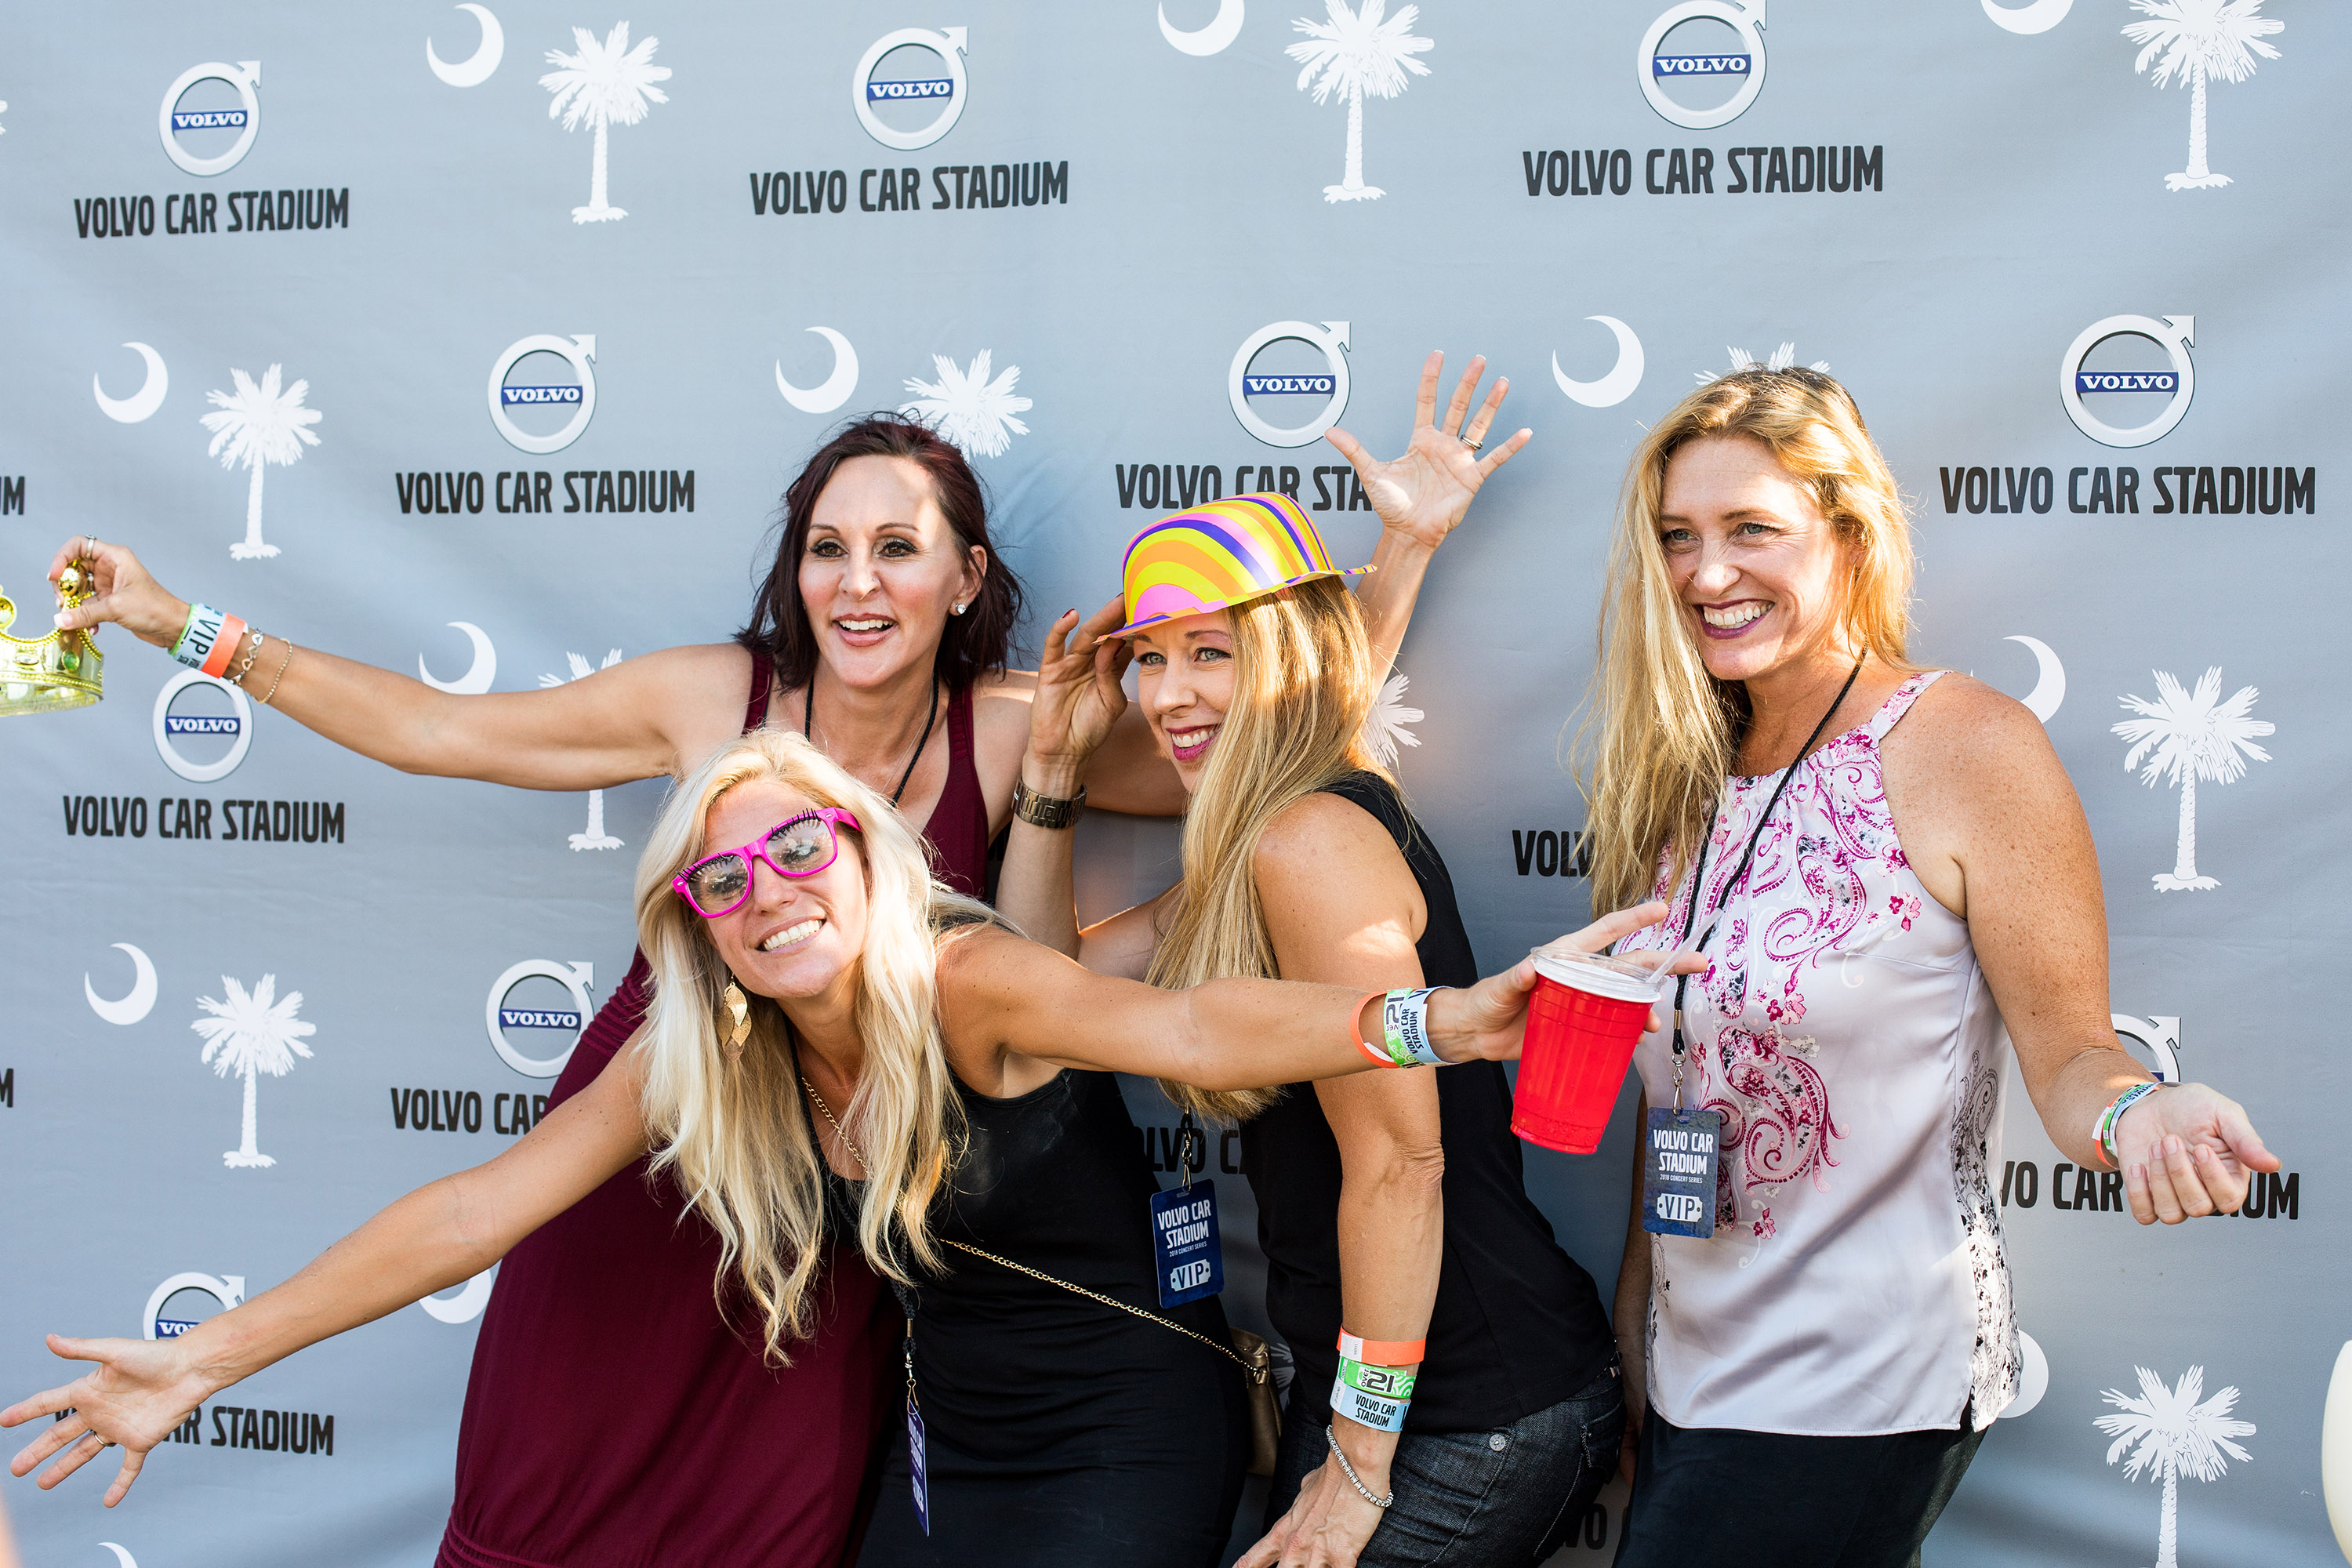 Volvo Car Stadium Concert Series Vip Experiences